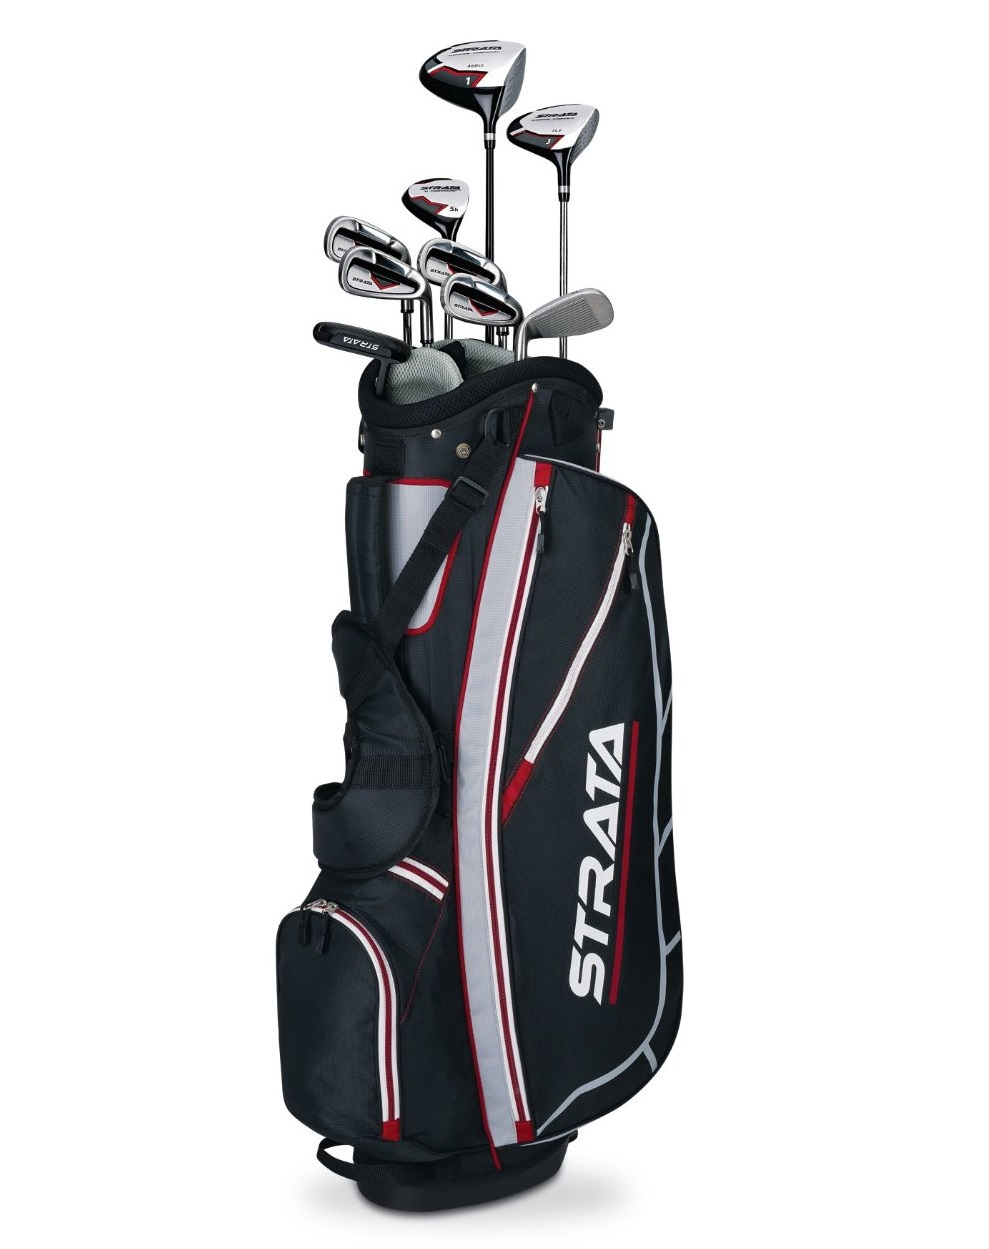 Mens Callaway Strata Complete Golf CLub Set with Bag